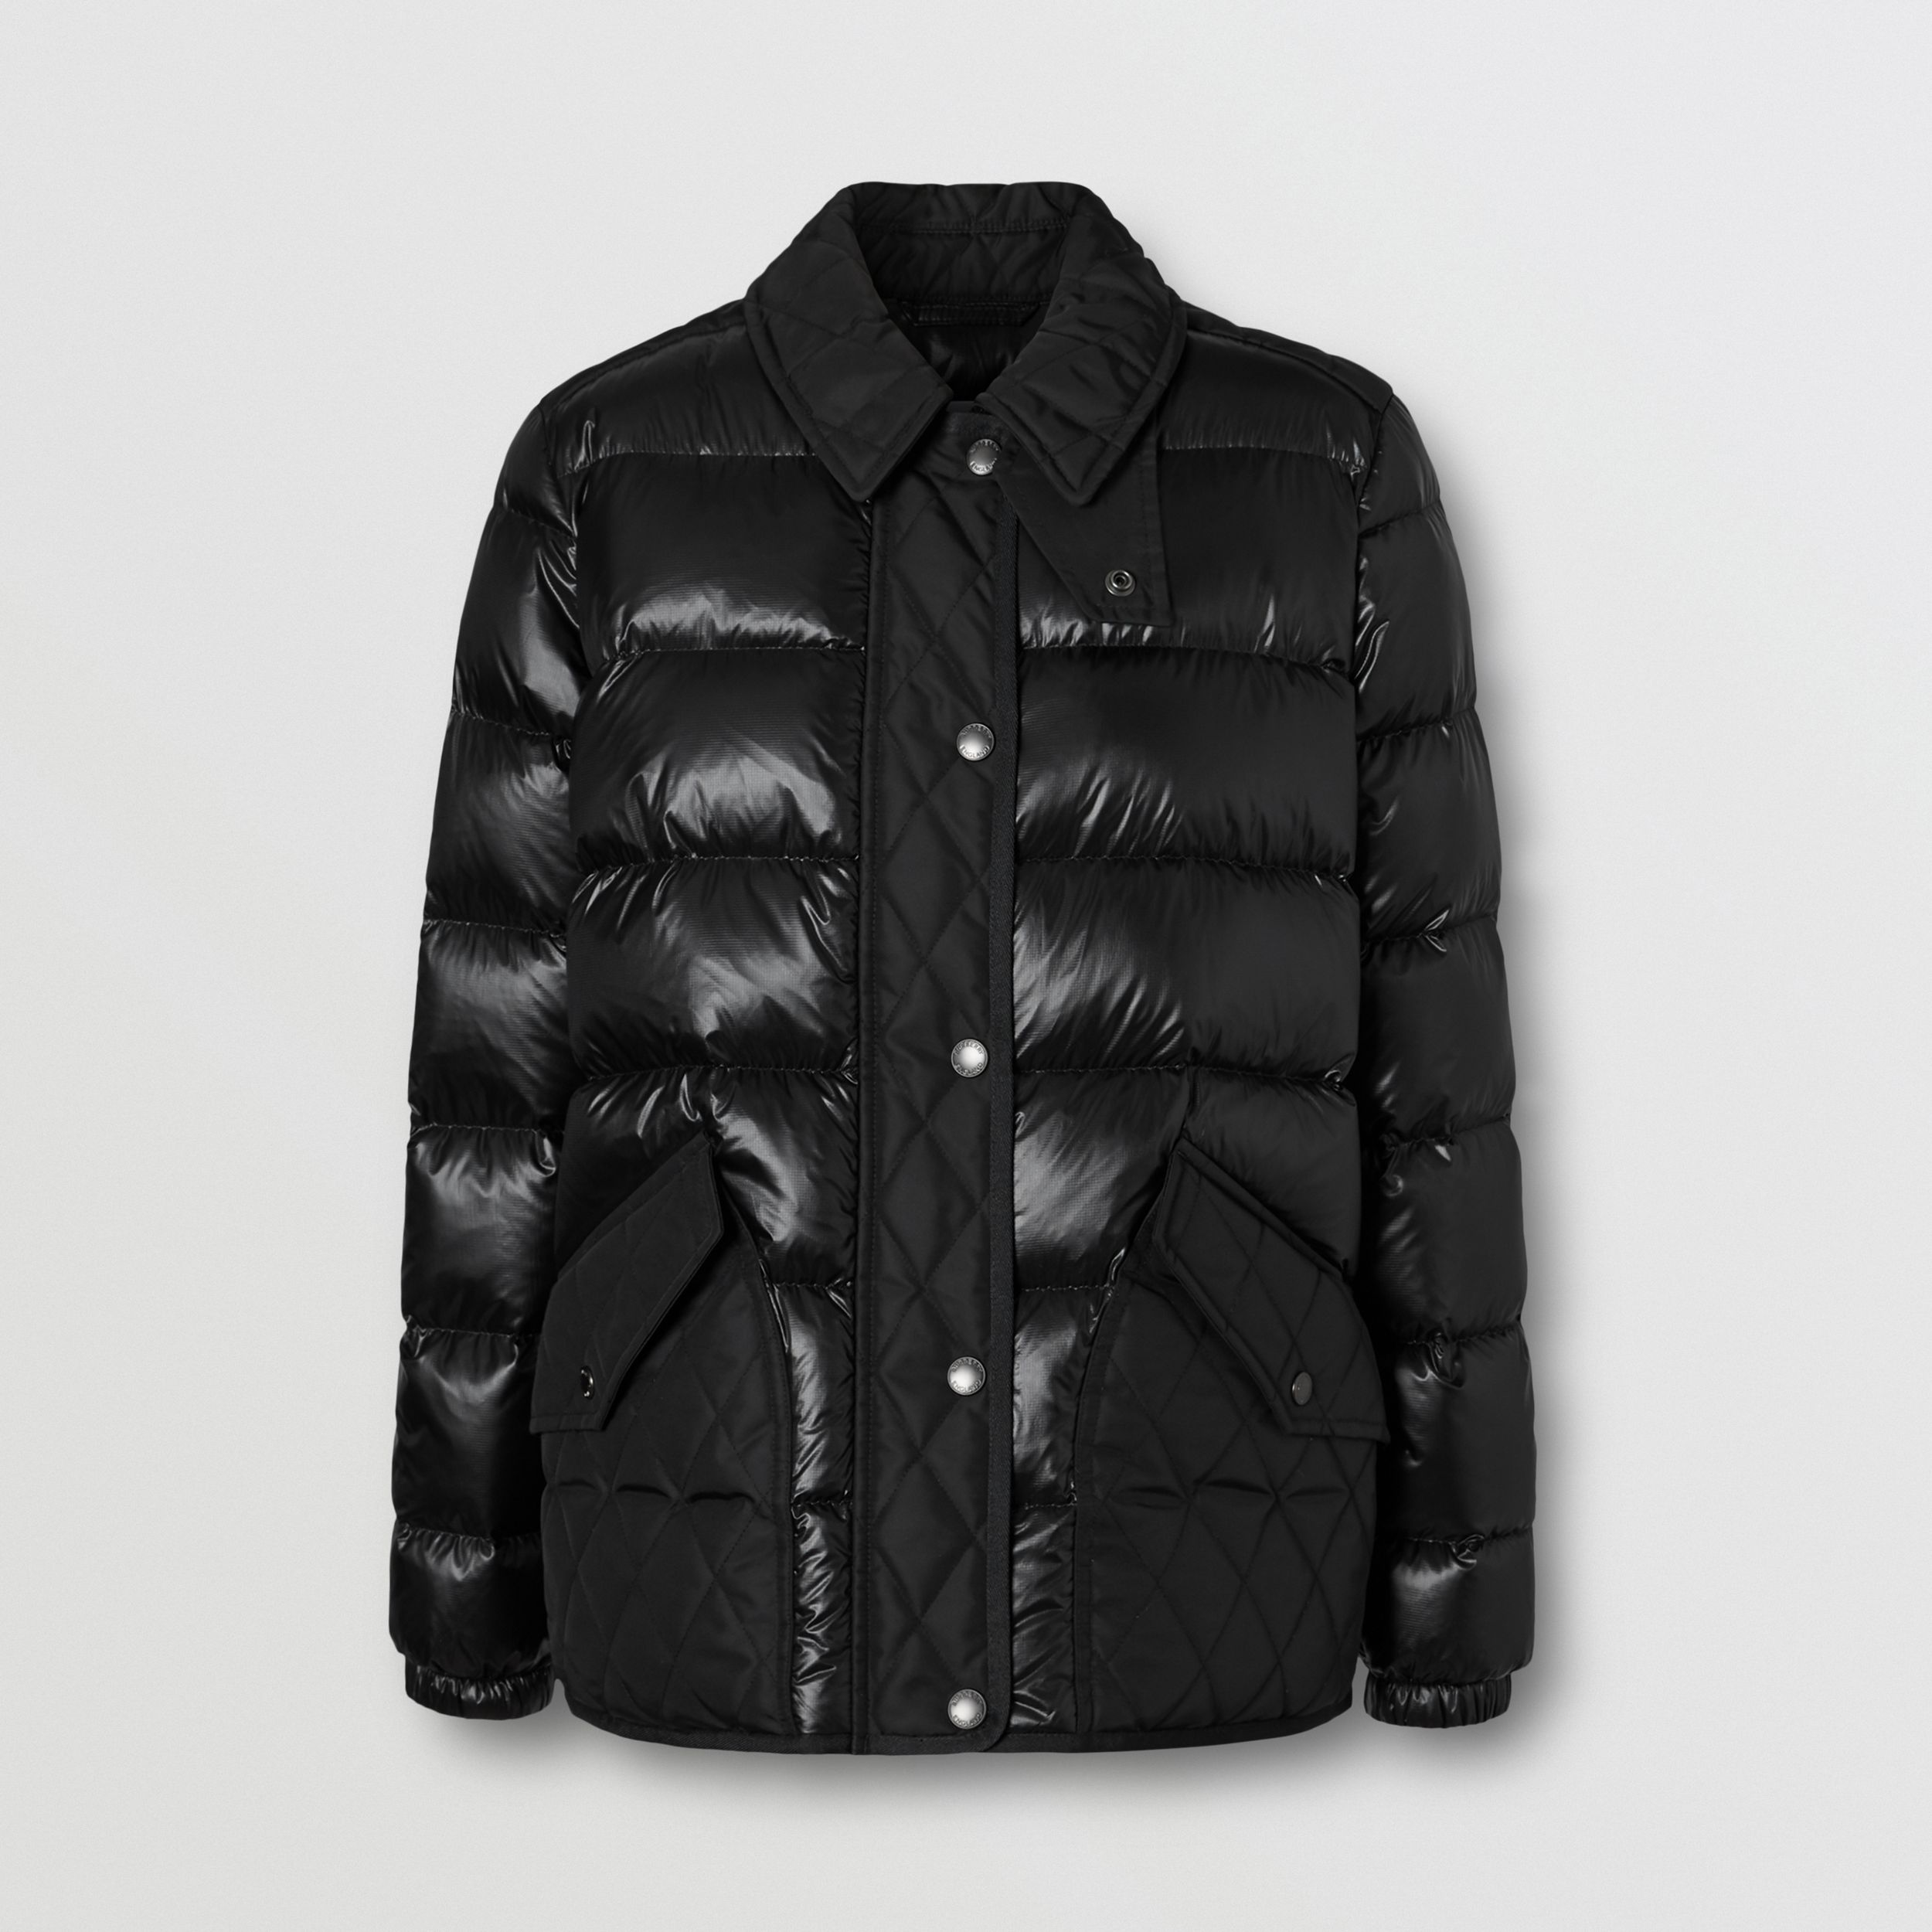 Diamond Quilted Panel Puffer Jacket in Black - Women | Burberry - 4